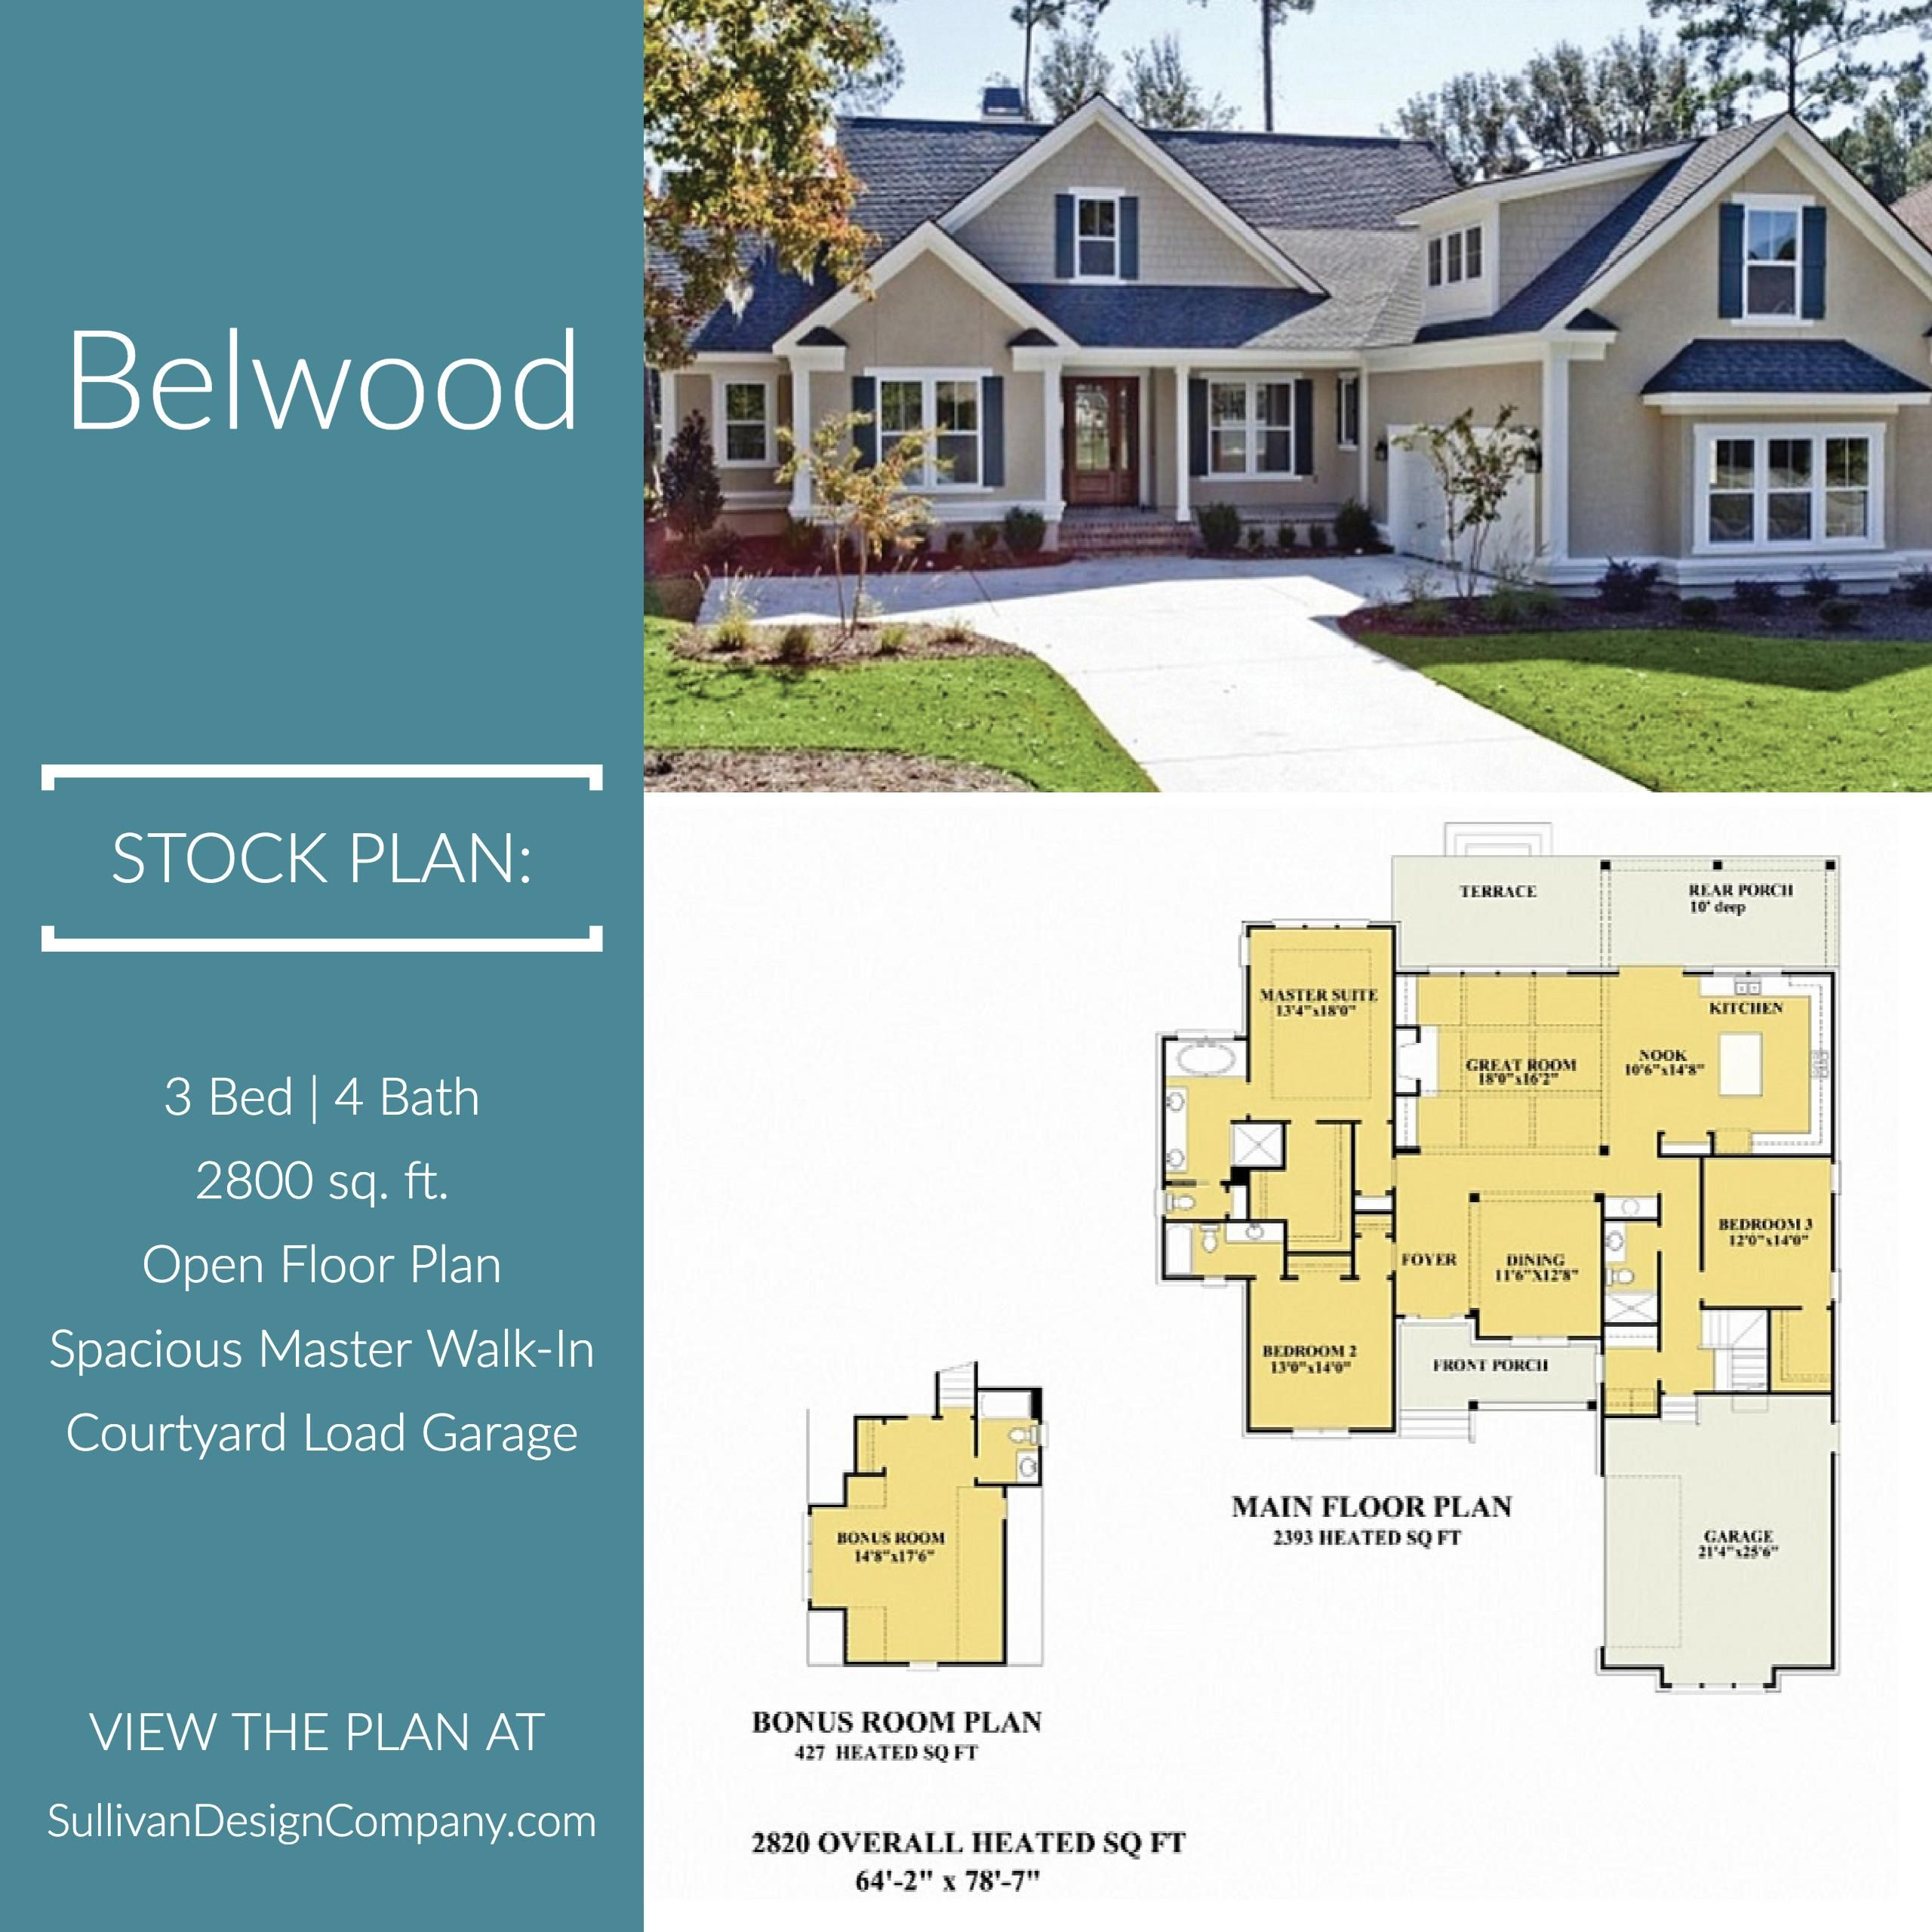 Belwood Cottage Style House Plans House Plans House Plans One Story